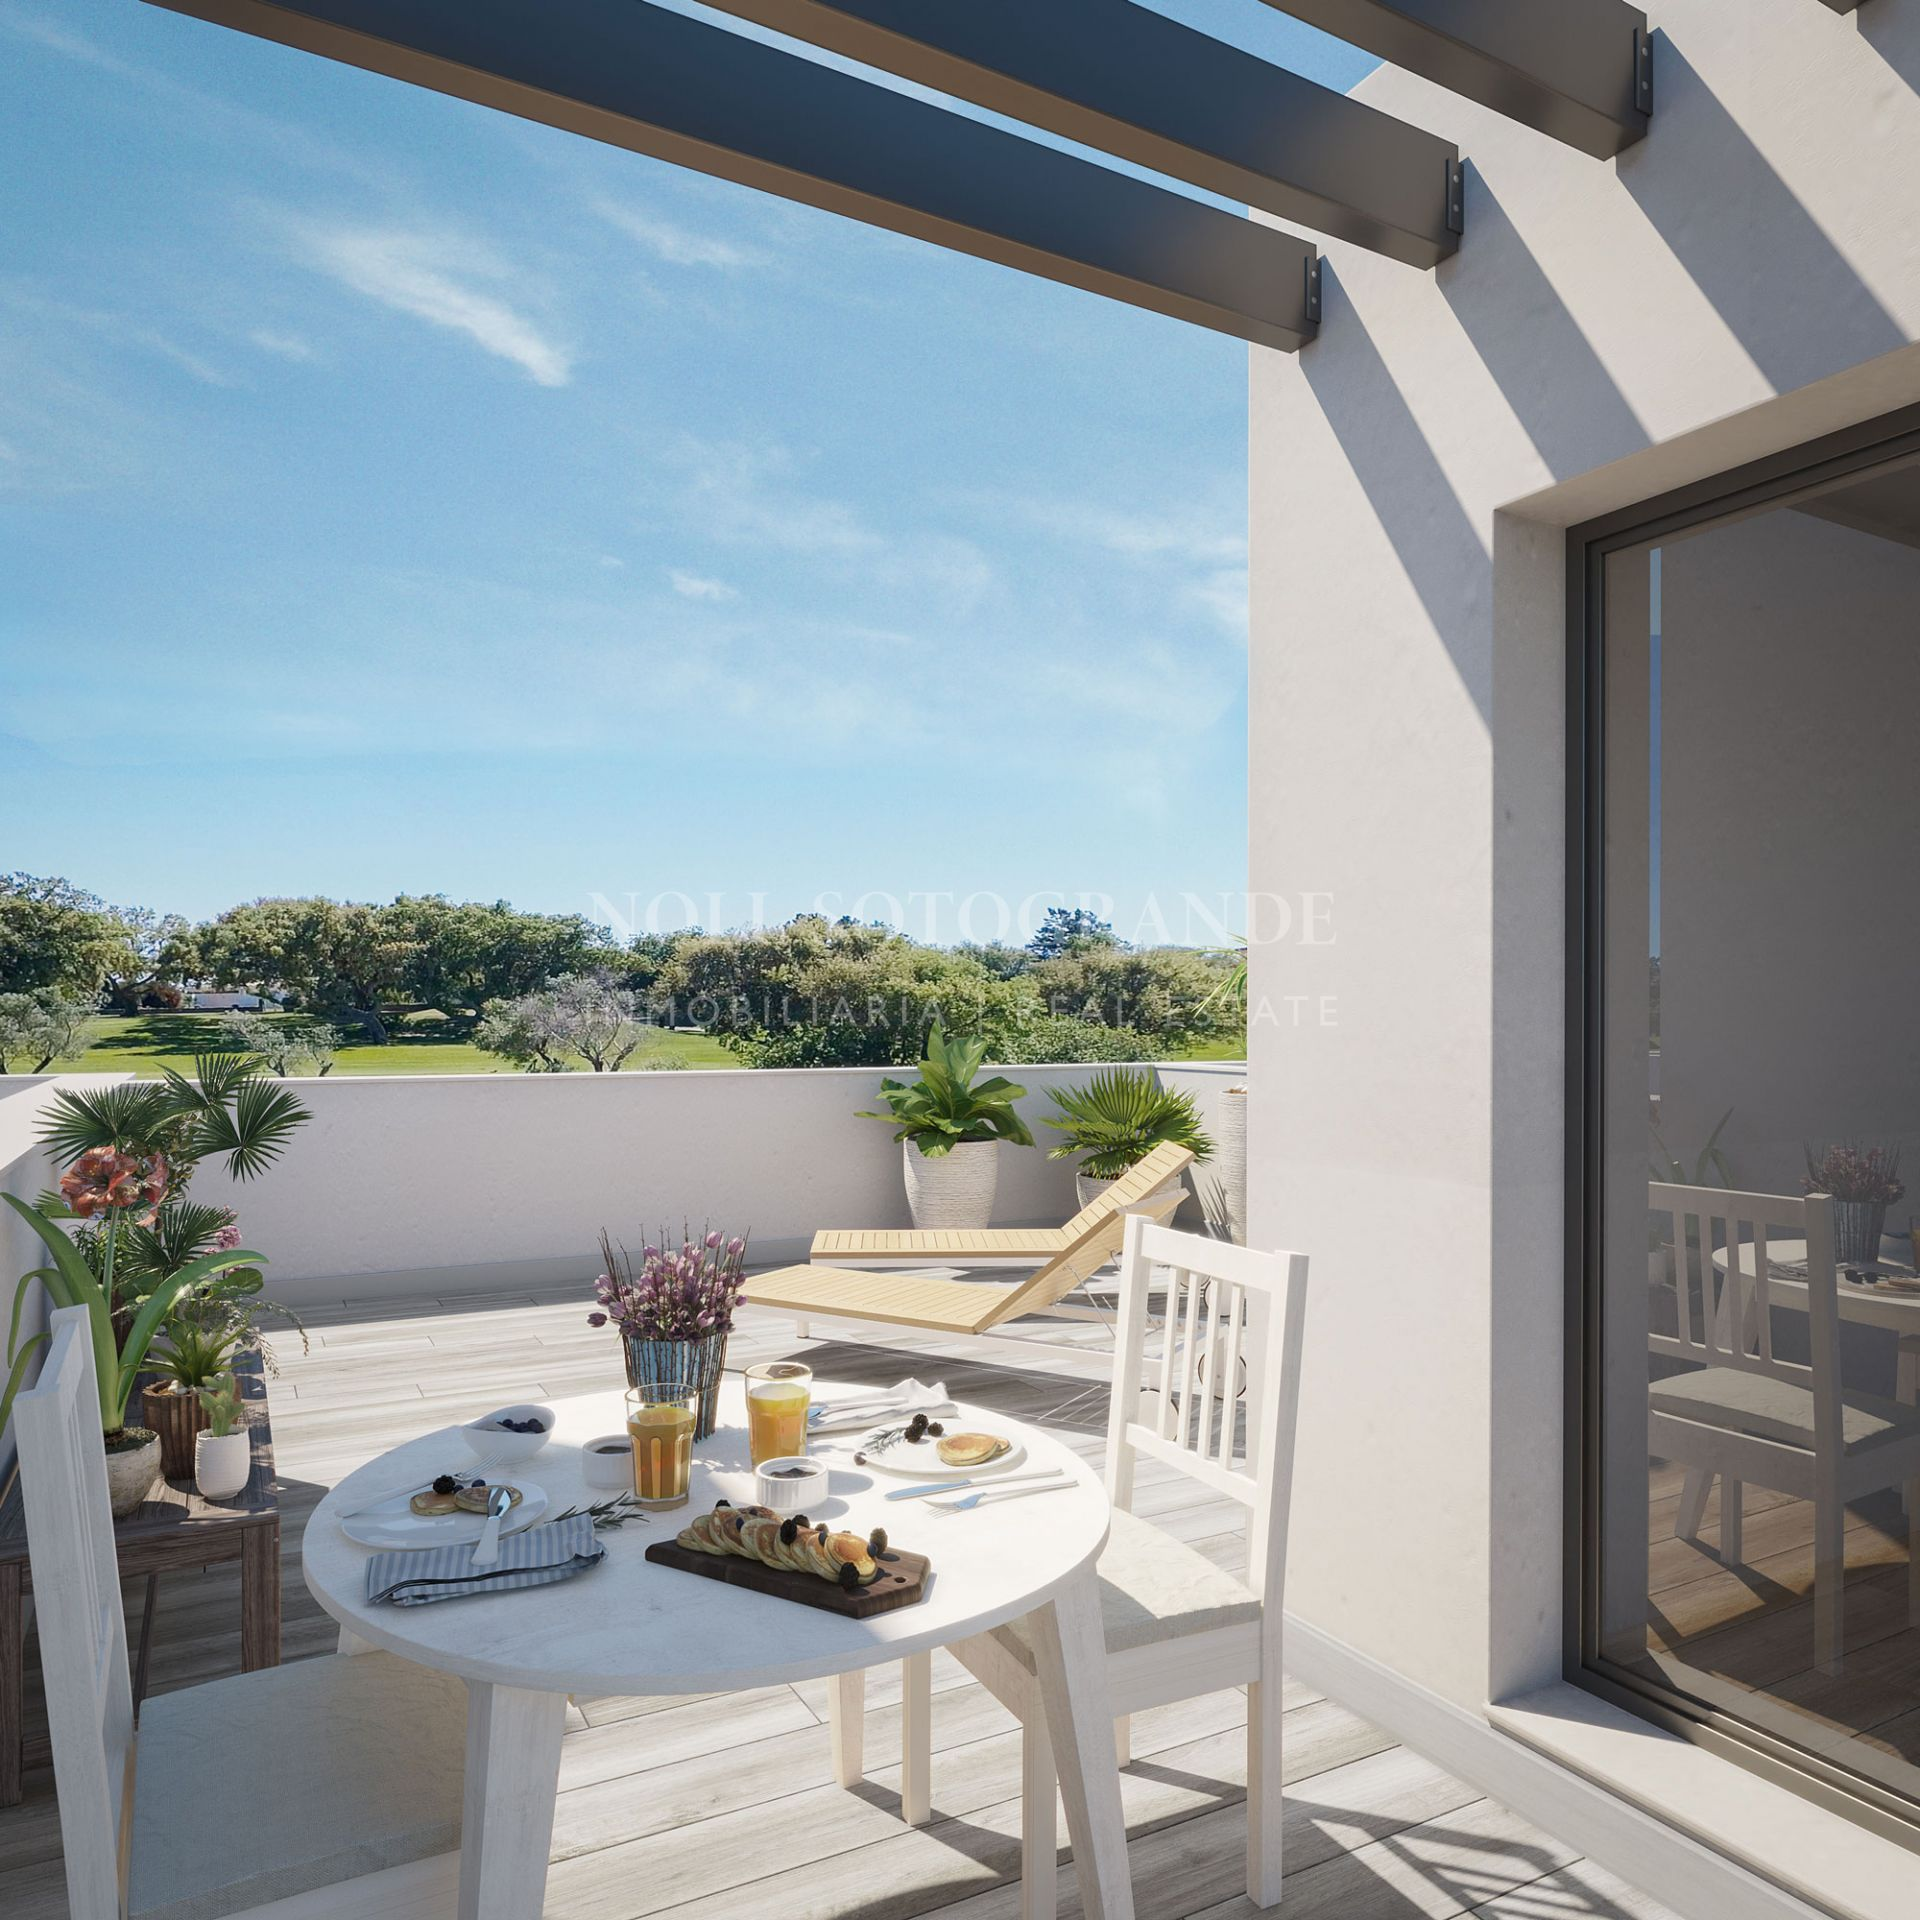 Hoyo 17 San Roque Golf Club, Exclusive front-line townhouses for Sale